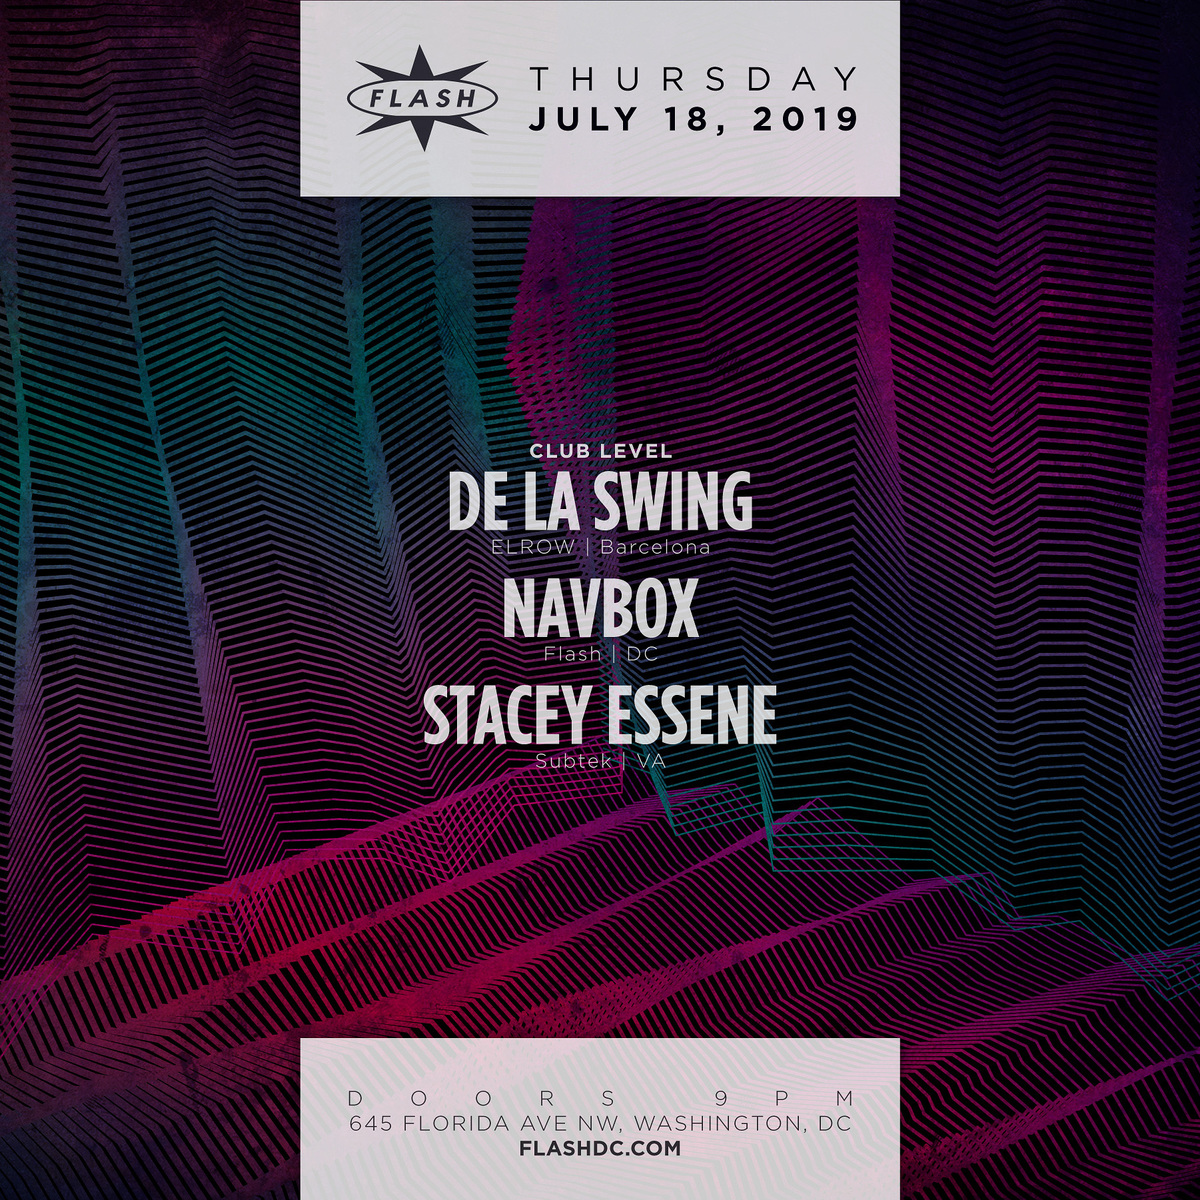 De La Swing - Navbox - Stacey Essene event thumbnail